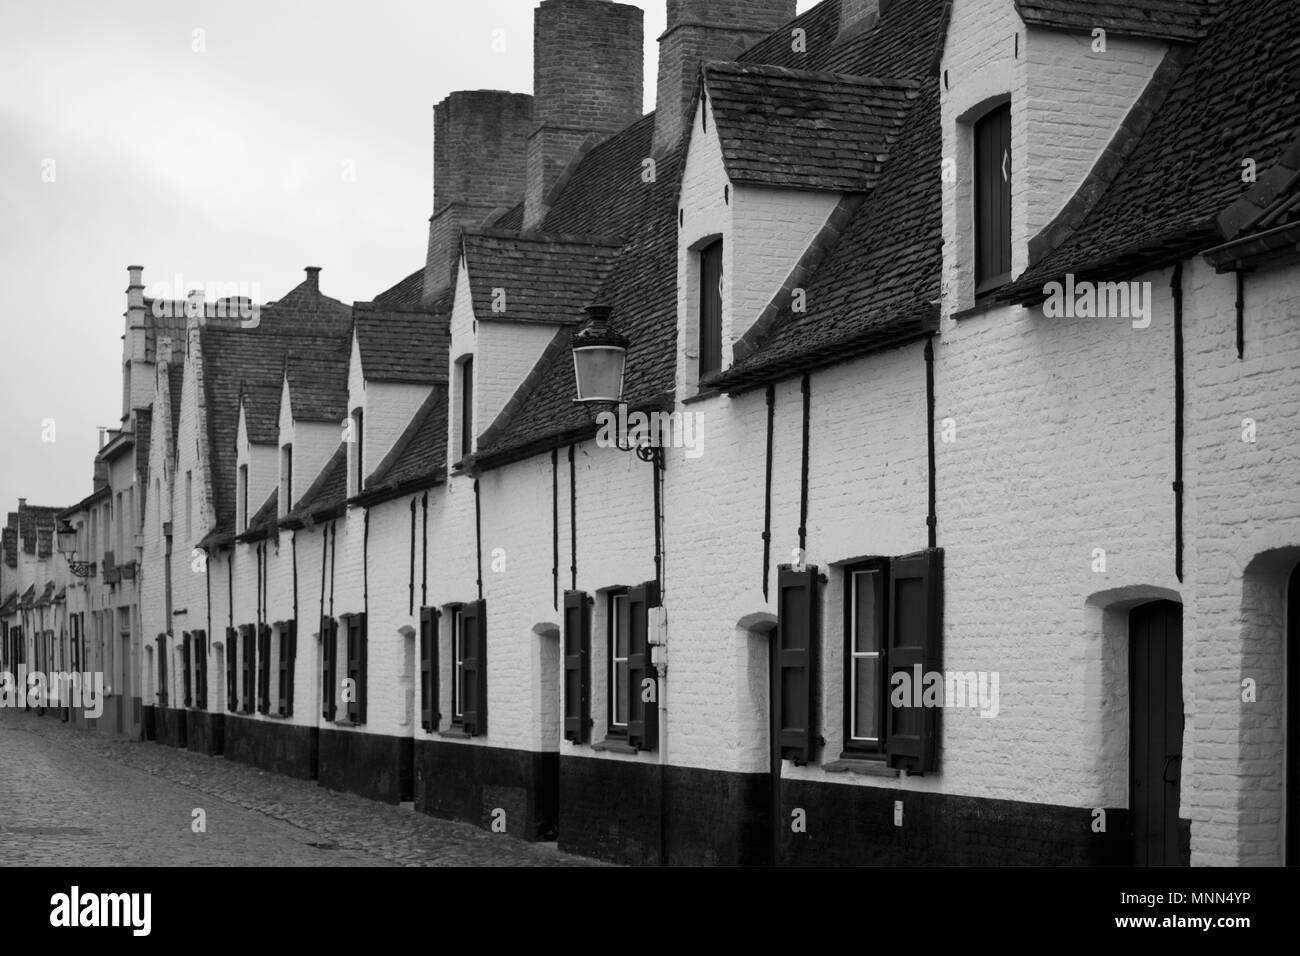 Balstraat, Brugge, Belgium: whitewashed cottages of the old Shoemakers' Guild almshouse, now housing the Museum voor Volkskunde - Stock Image